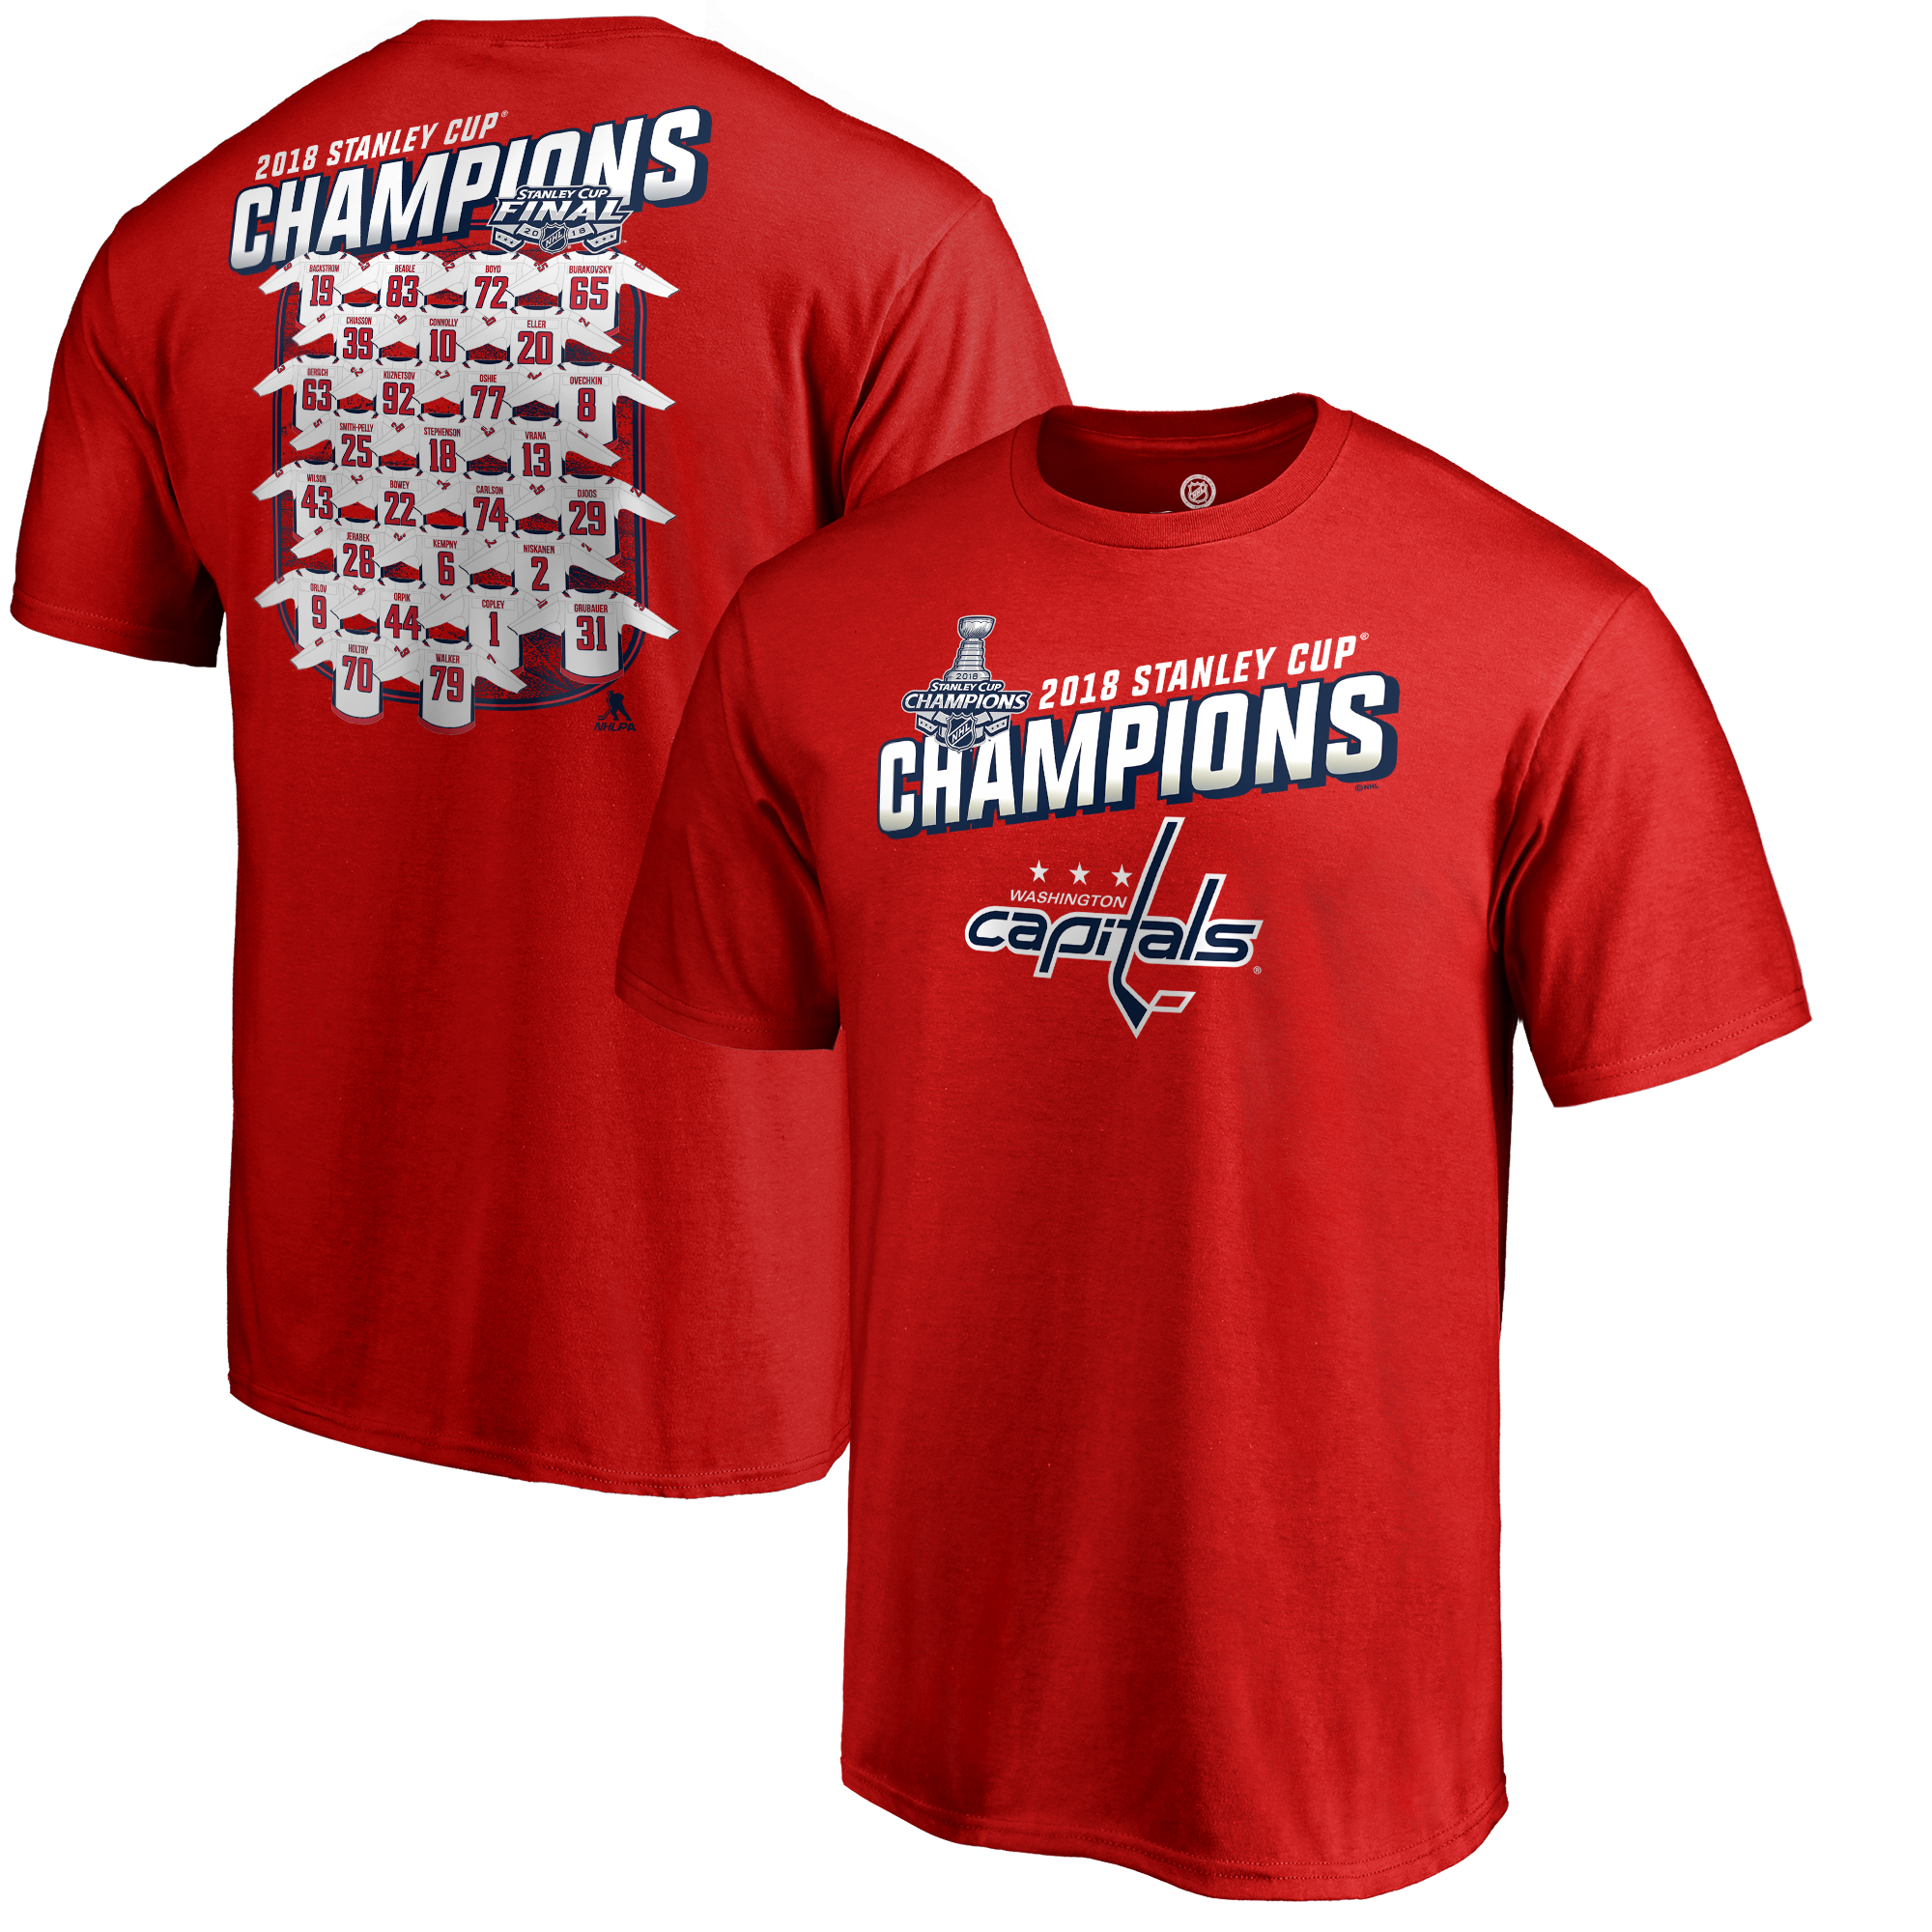 Washington Capitals Fanatics Branded 2018 Stanley Cup Champions Jersey Roster T-Shirt - Red